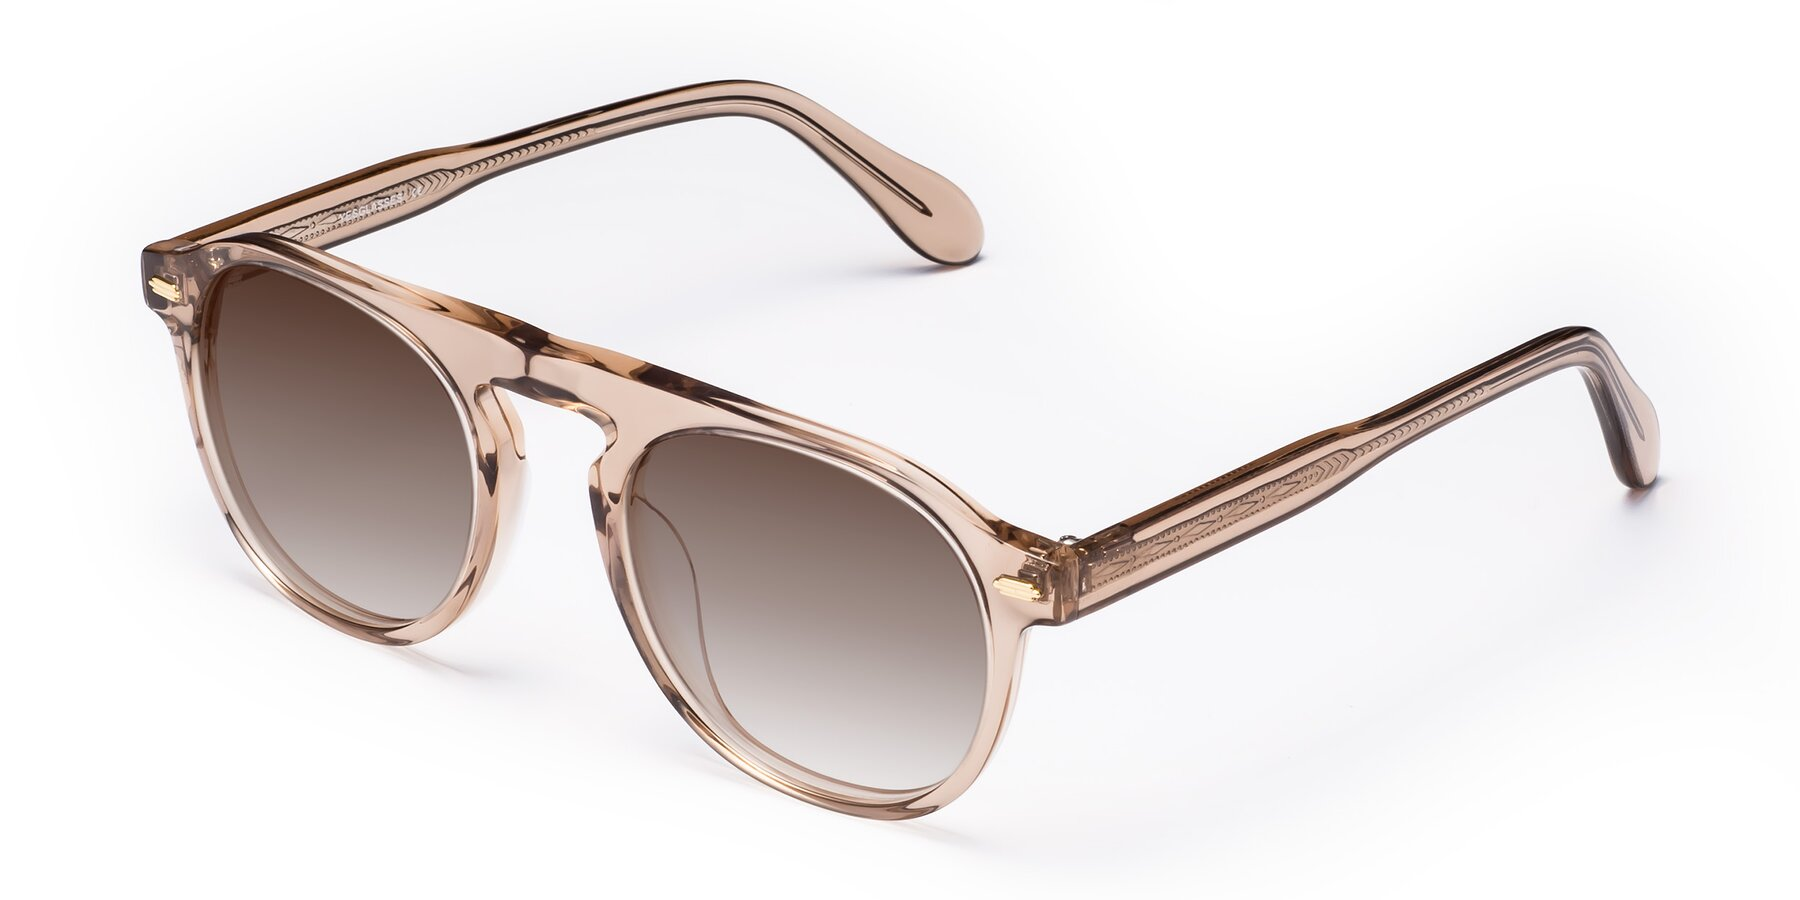 Angle of Mufasa in light Brown with Brown Gradient Lenses